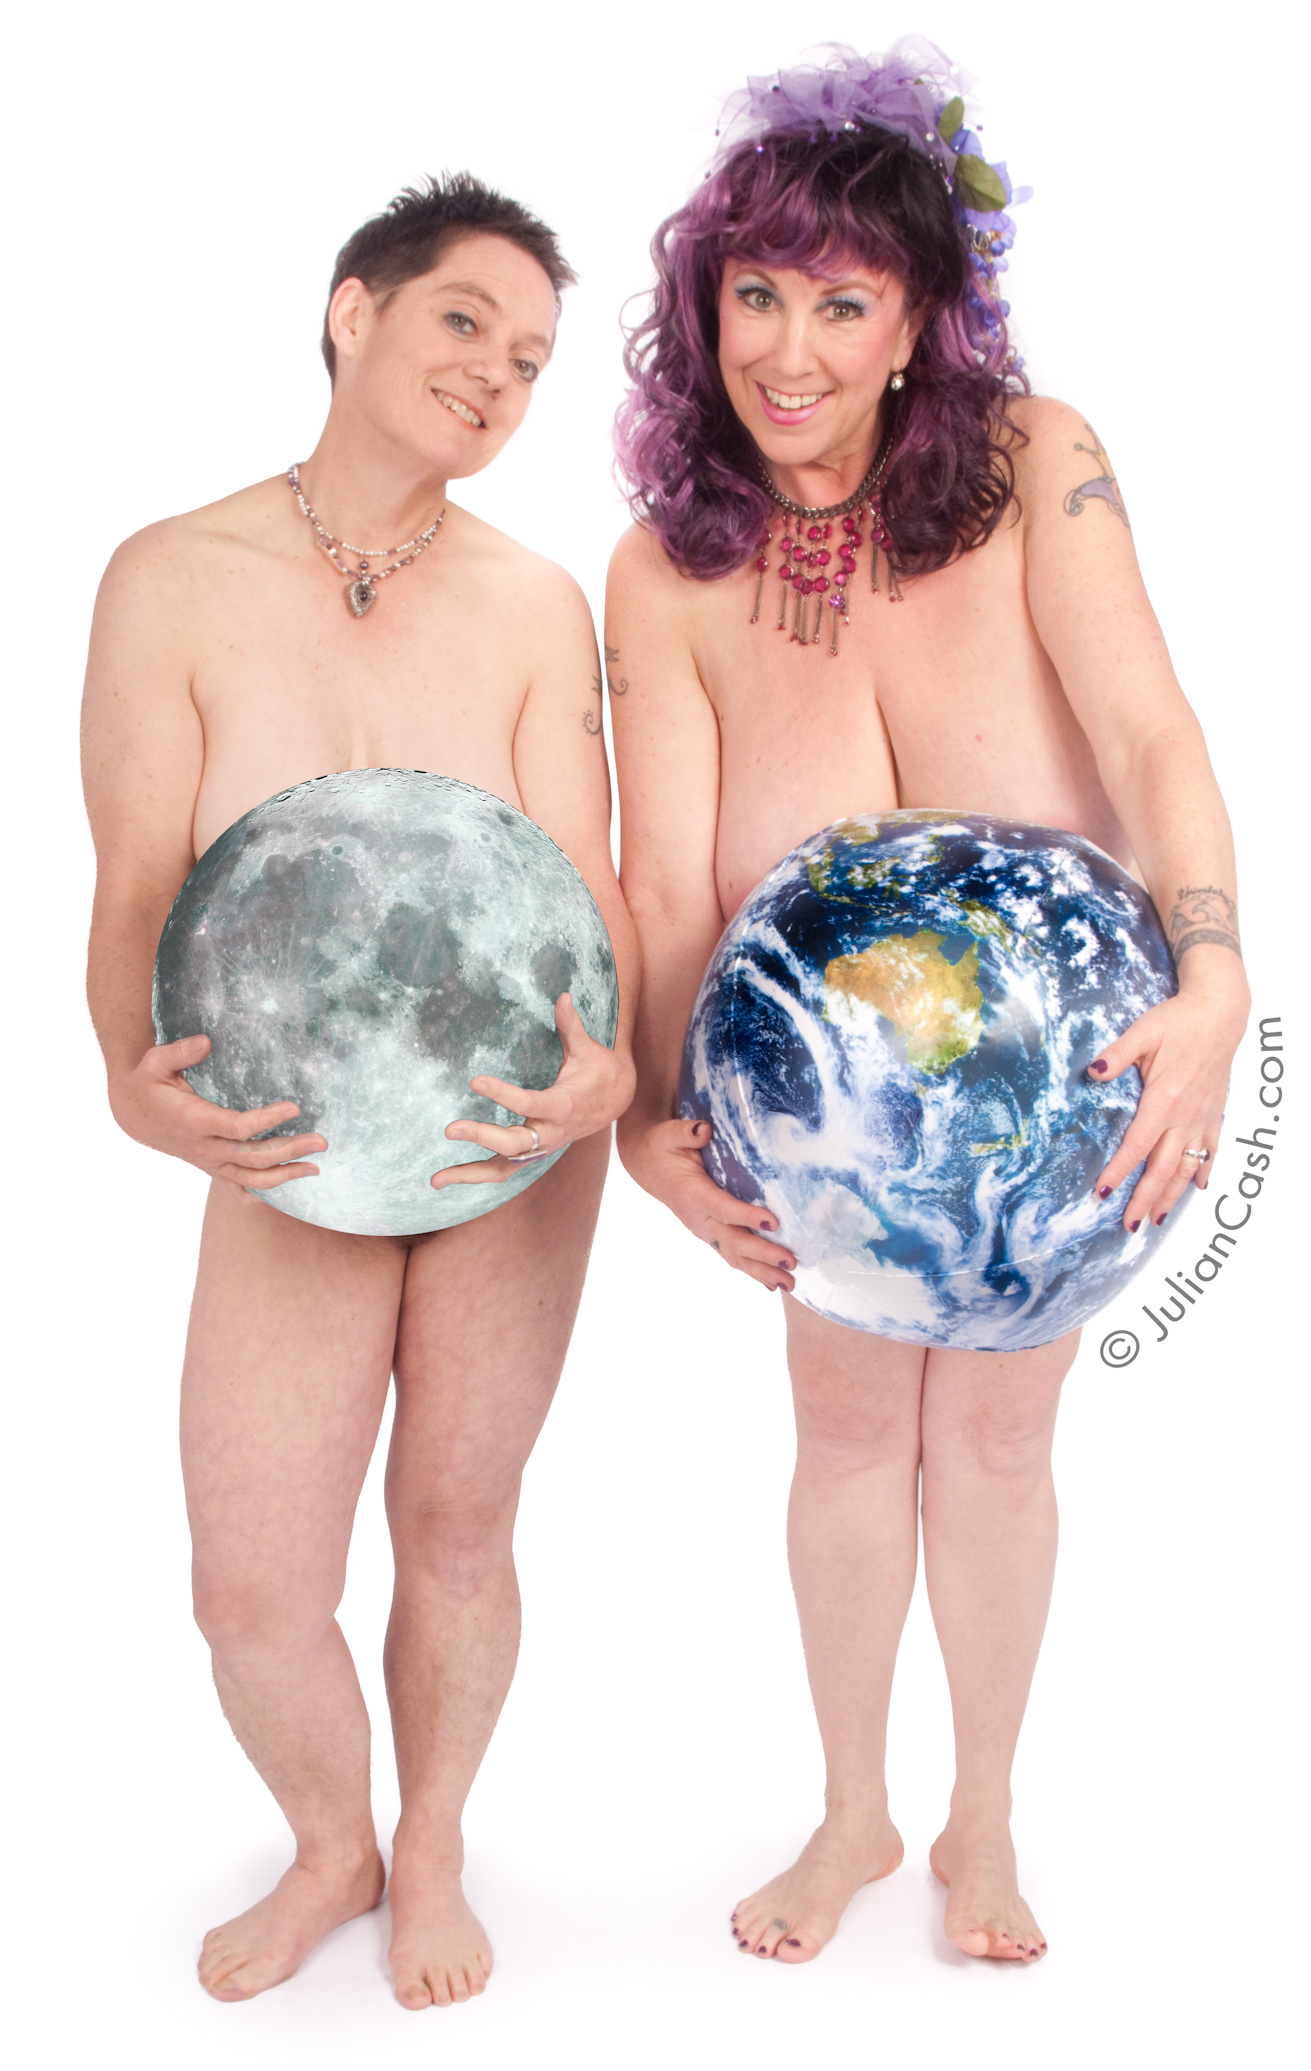 Interview with Annie Sprinkle and Elizabeth M. Stephens ...